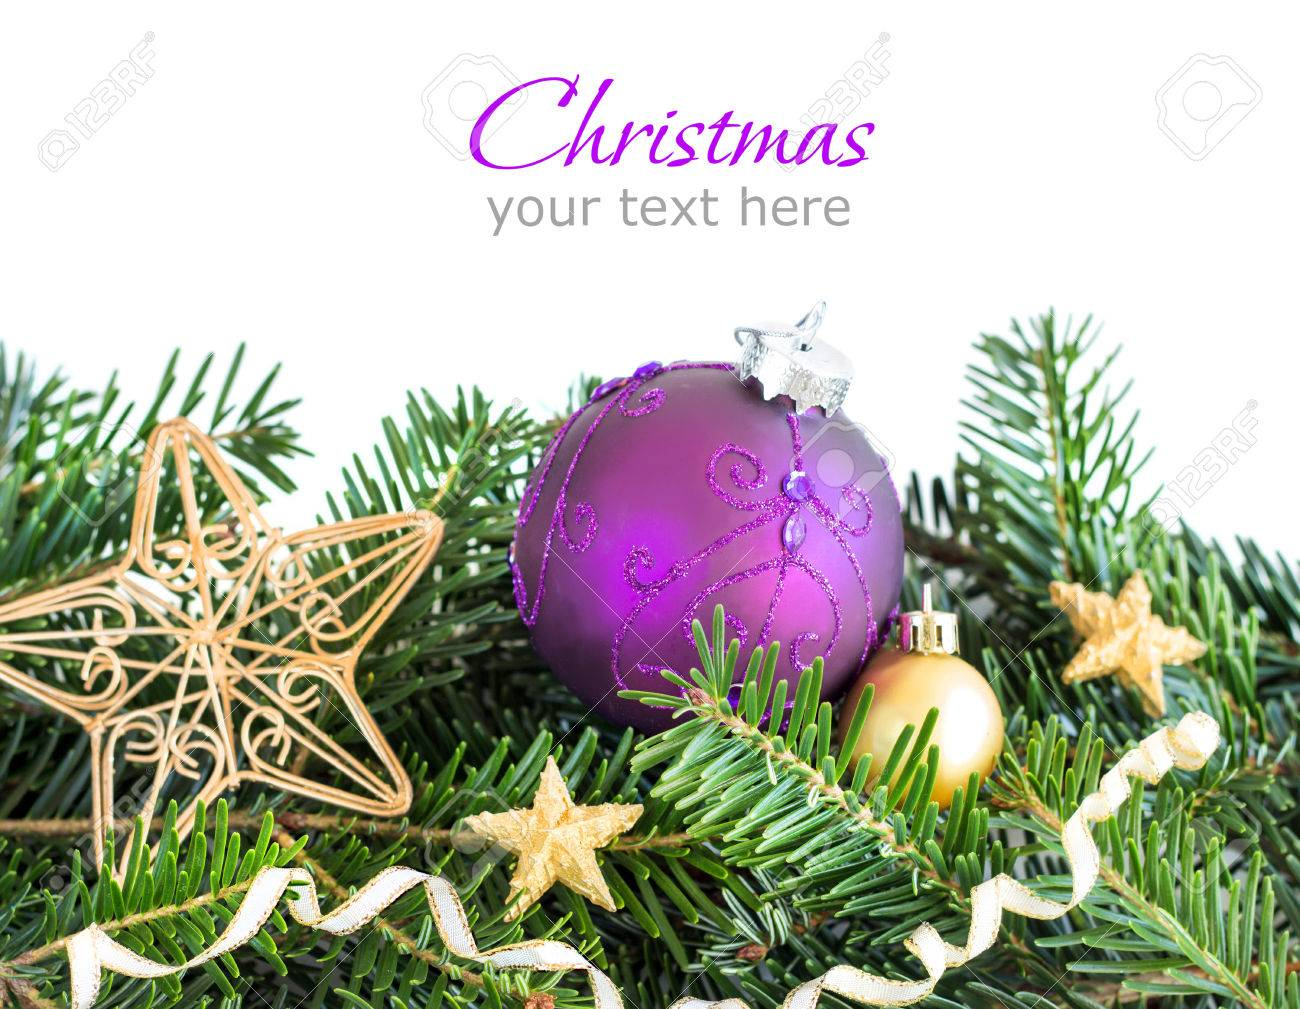 Golden And Purple Christmas Ornaments Border On White Background